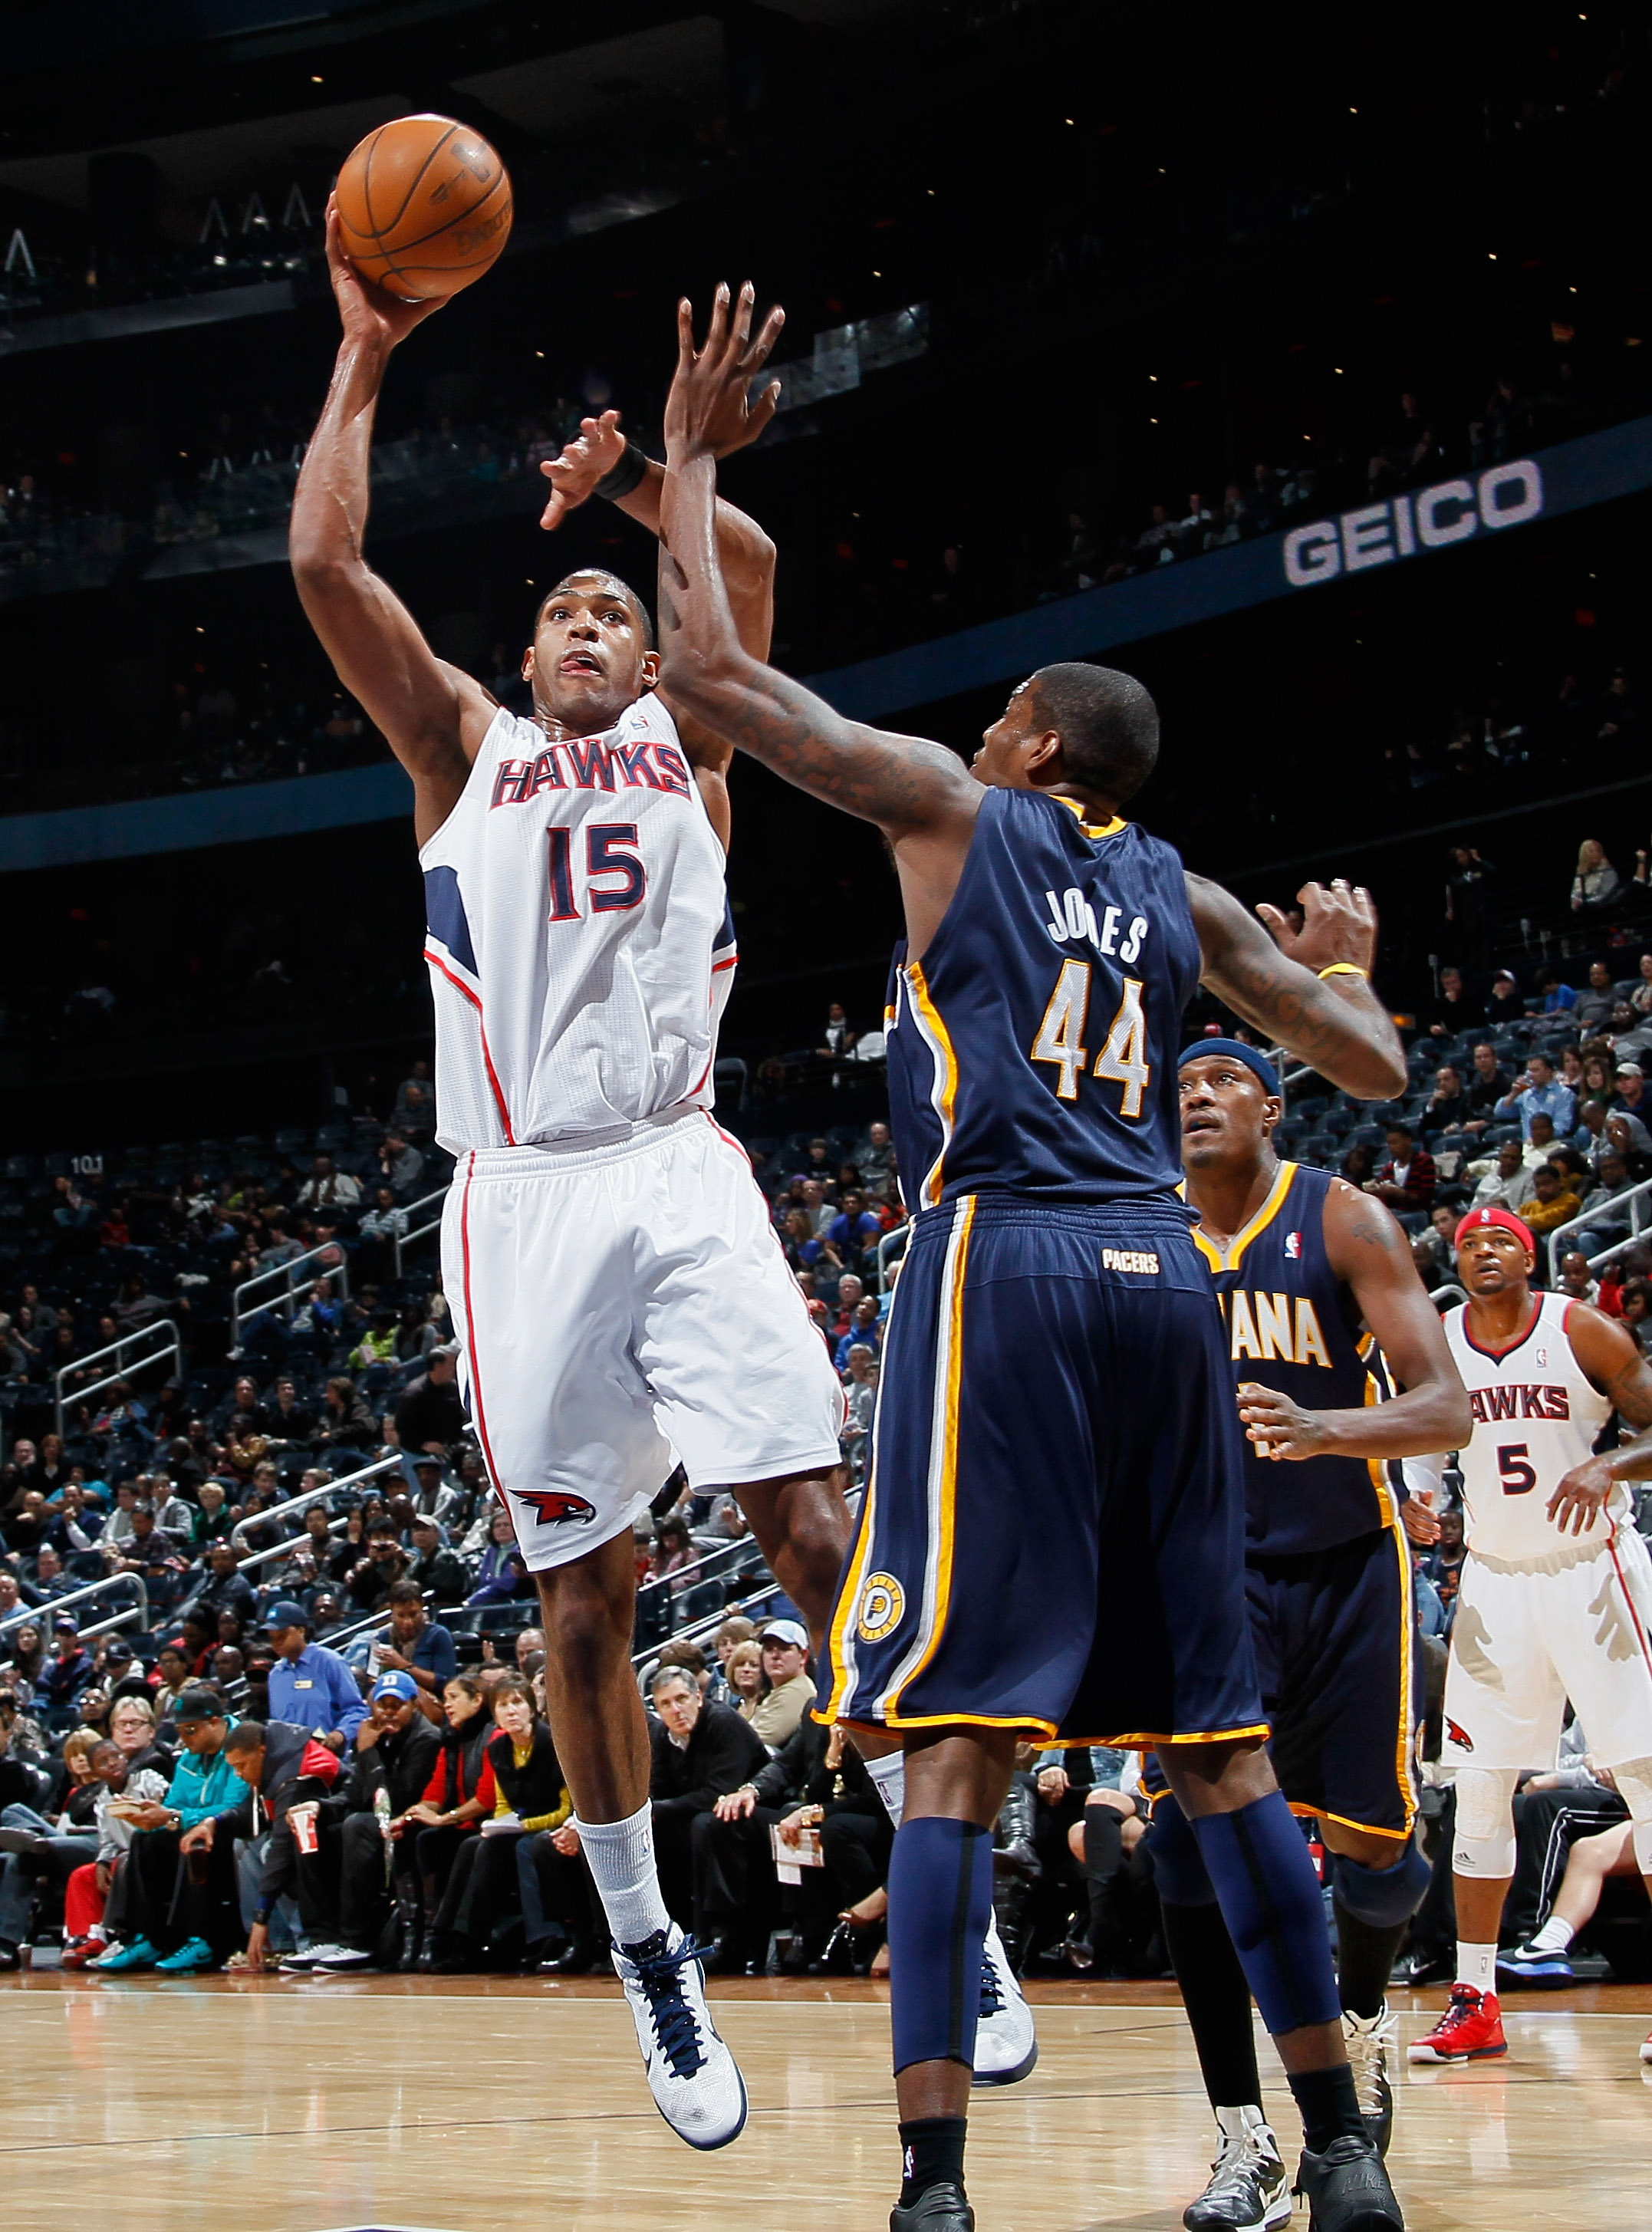 ATLANTA, GA - DECEMBER 11:  Al Horford #15 of the Atlanta Hawks shoots over Solomon Jones #44 of the Indiana Pacers at Philips Arena on December 11, 2010 in Atlanta, Georgia.  NOTE TO USER: User expressly acknowledges and agrees that, by downloading and/o